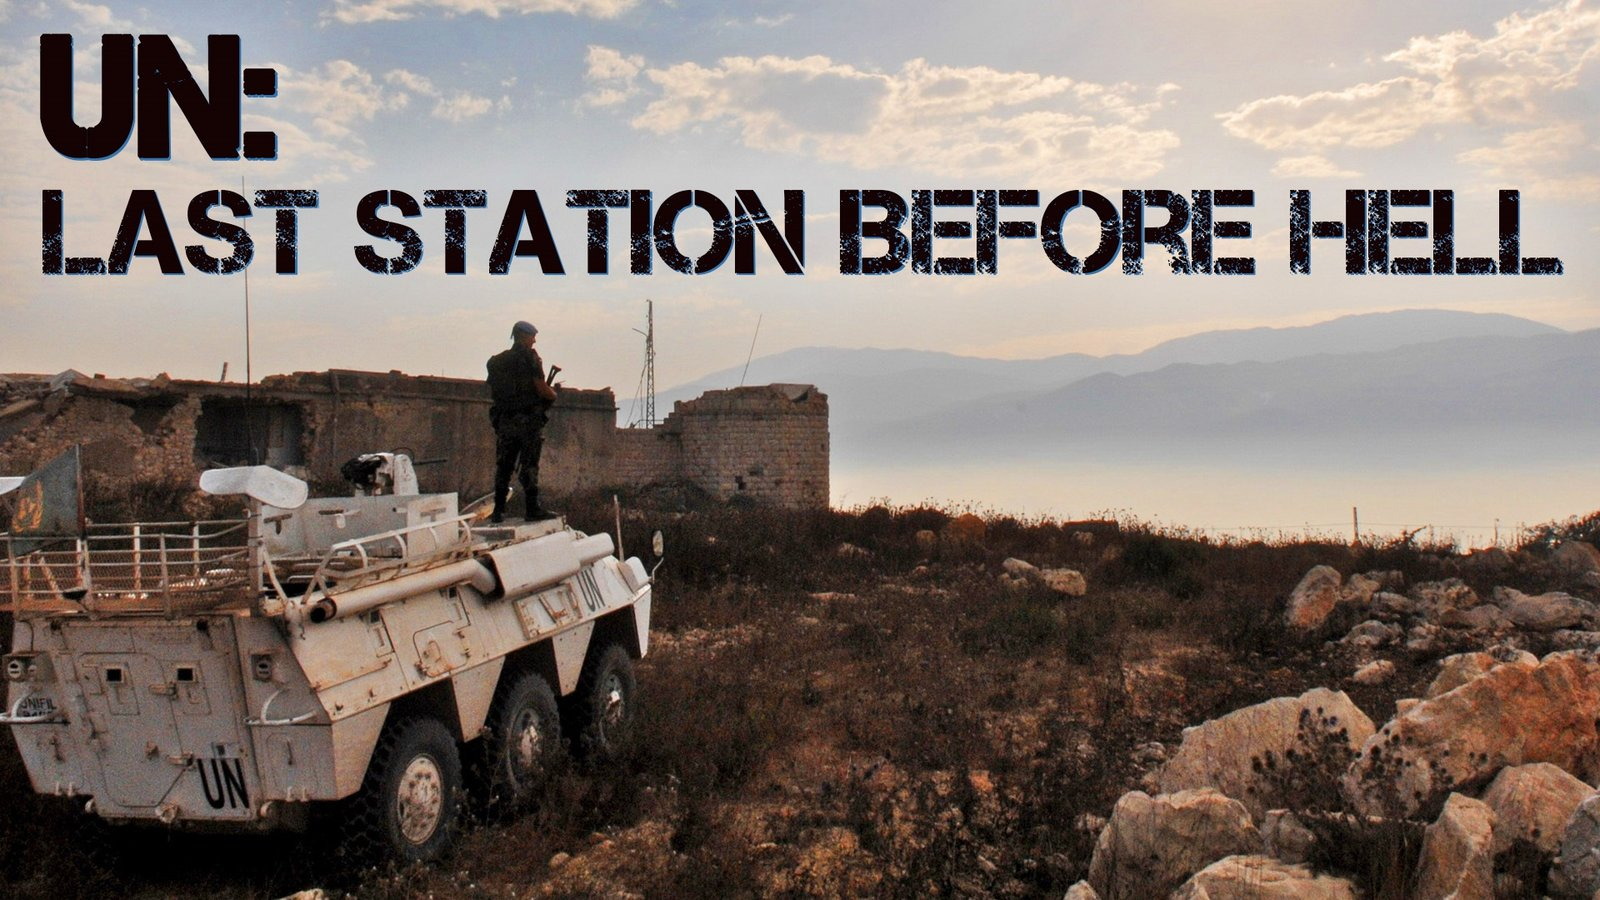 UN: Last Station Before Hell - The Mission of the United Nations in a Rapidly Changing World